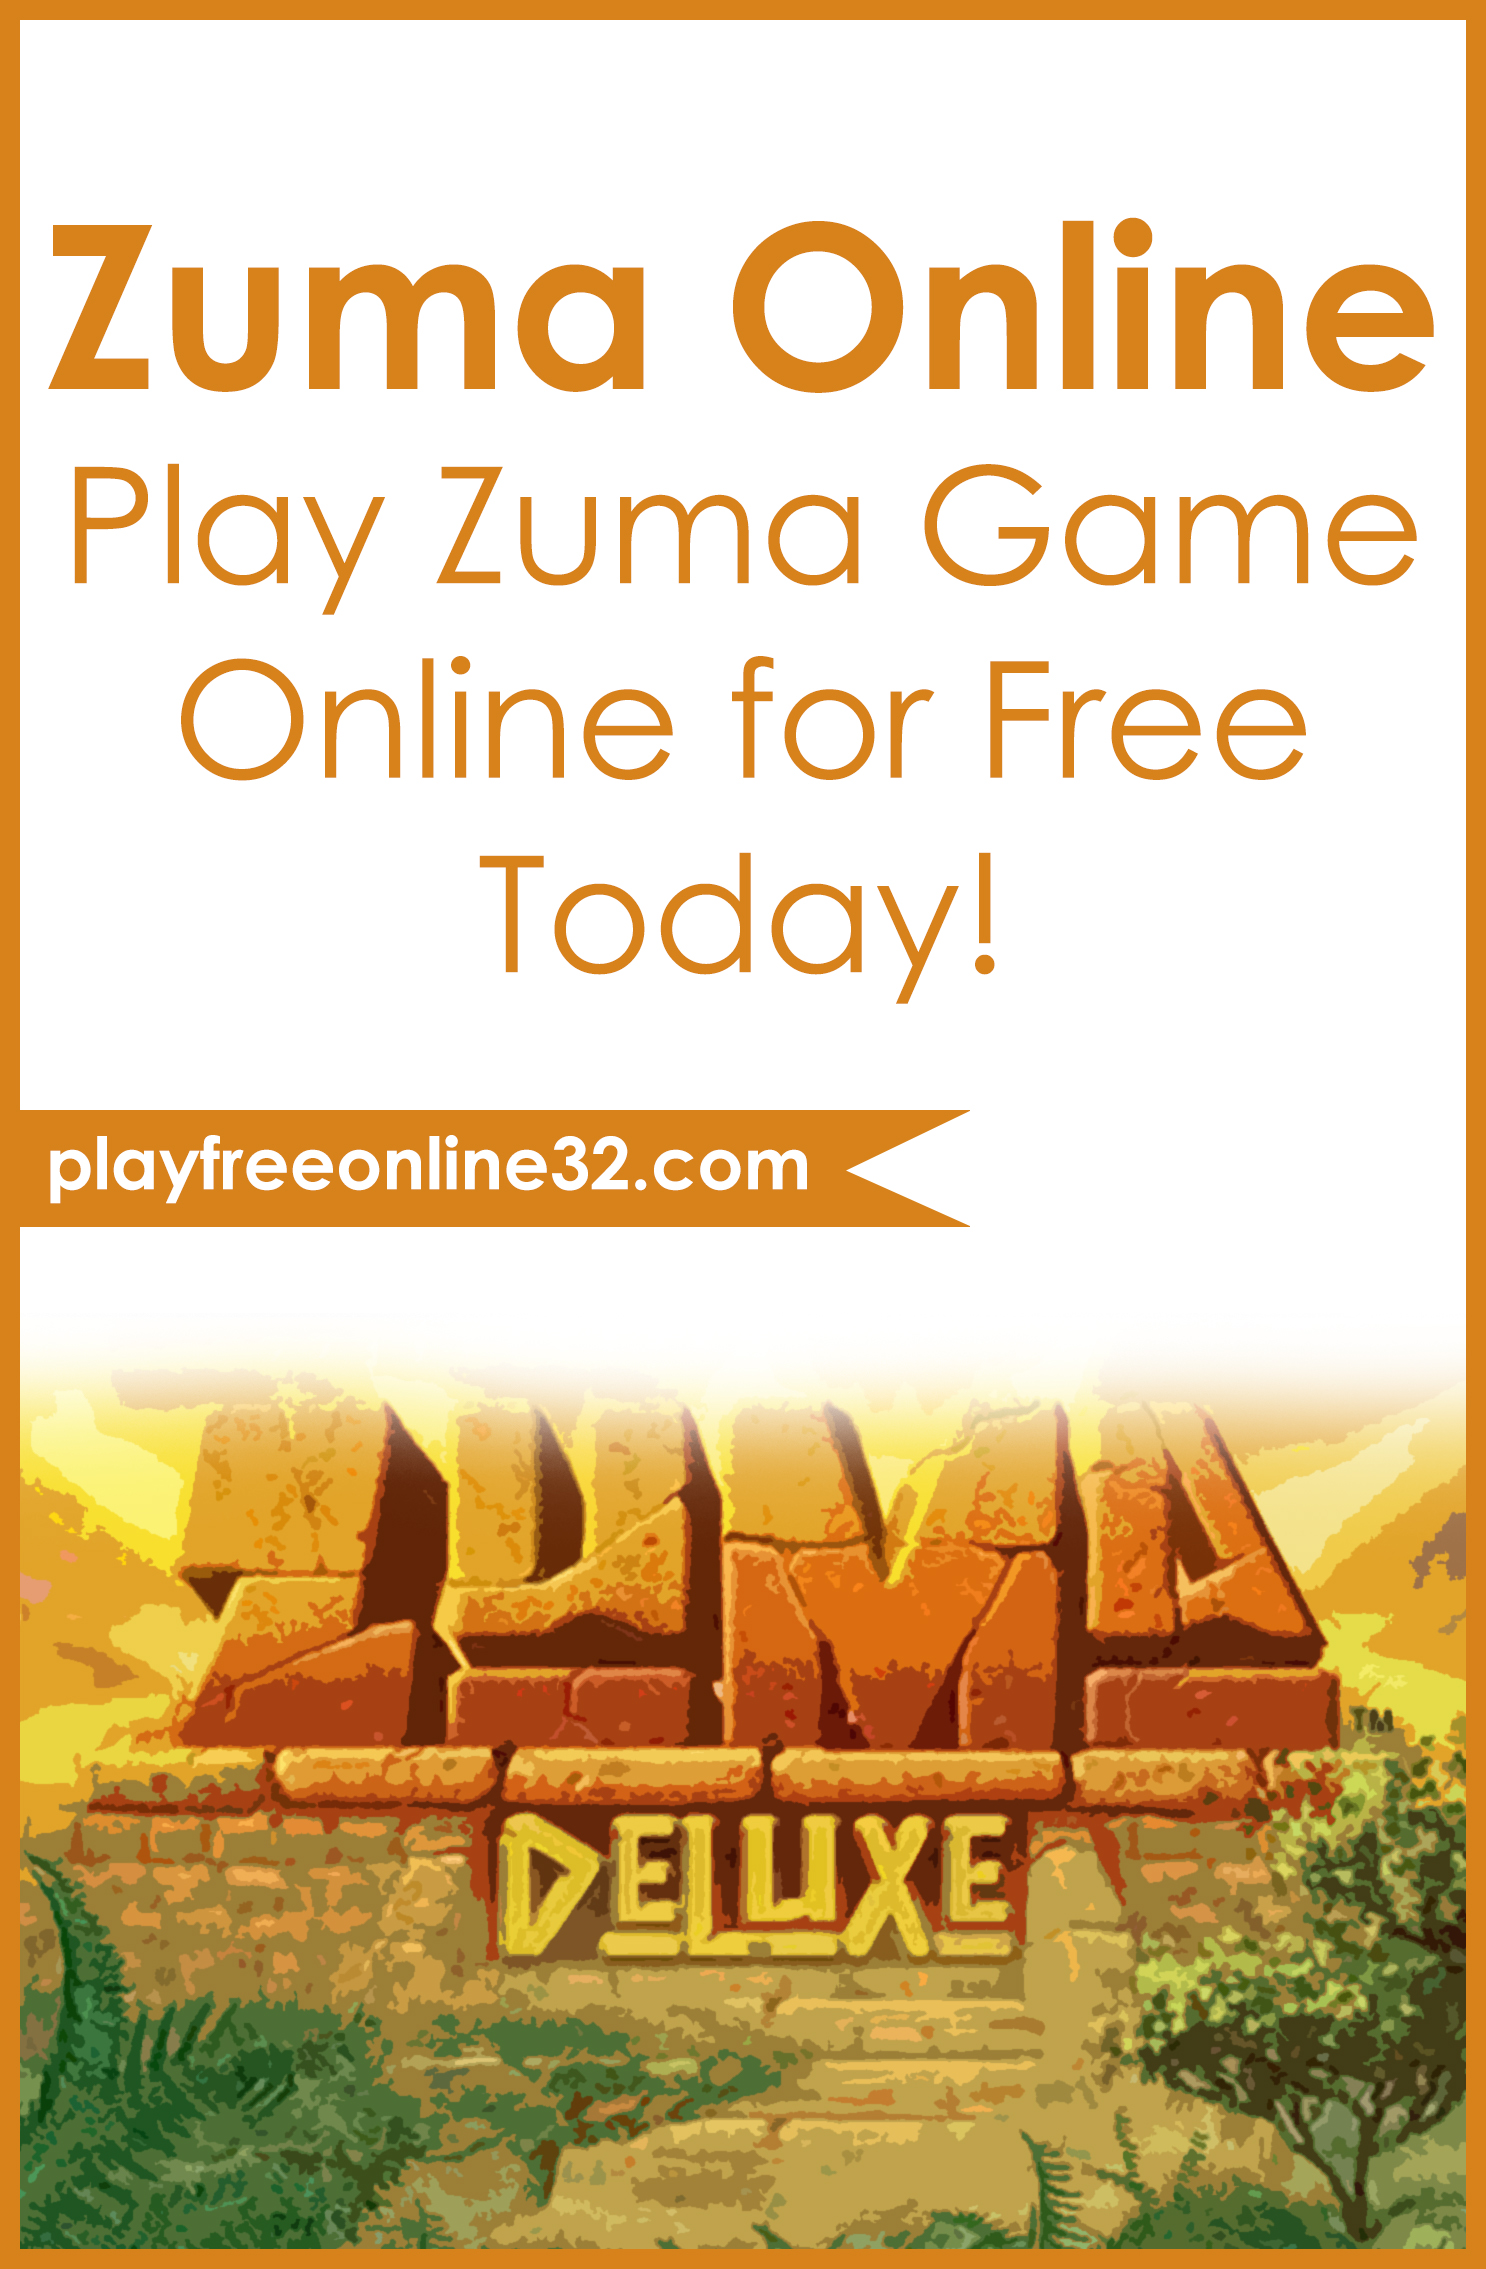 Zuma Online • Play Zuma Game Online for Free Today!